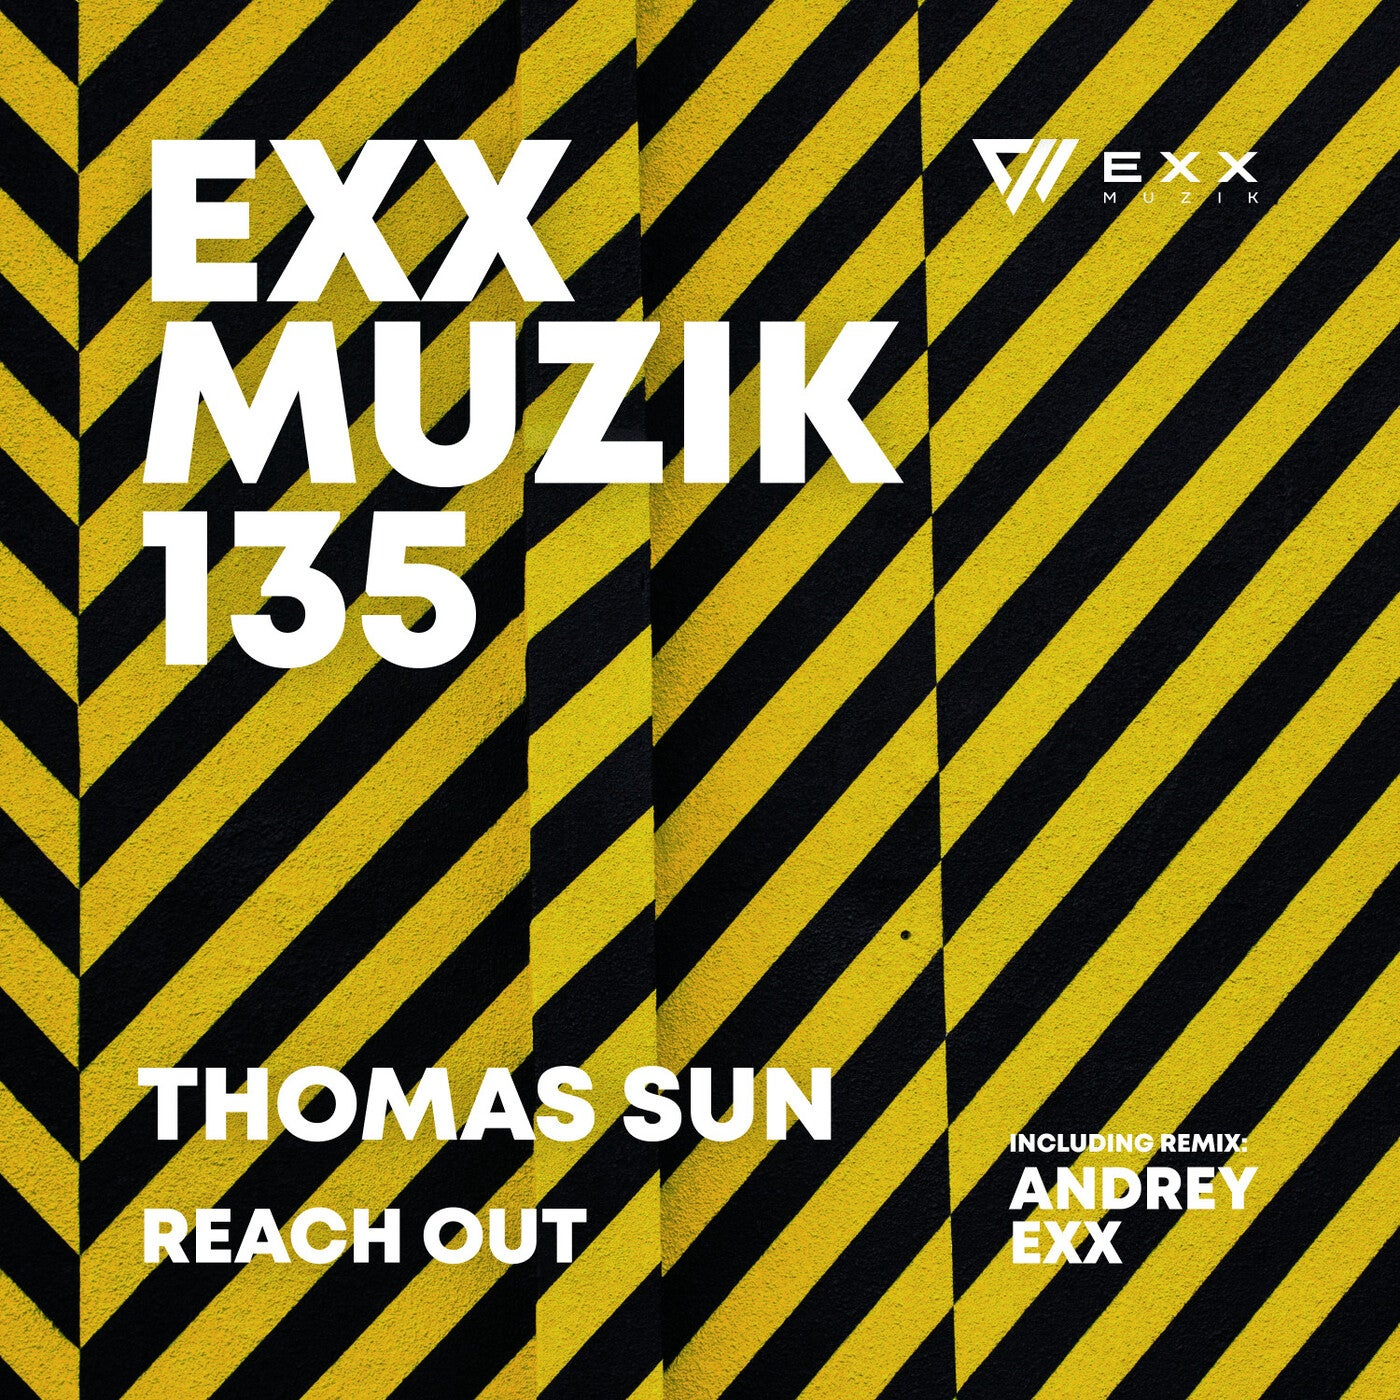 Reach Out (Andrey Exx Extended Remix)